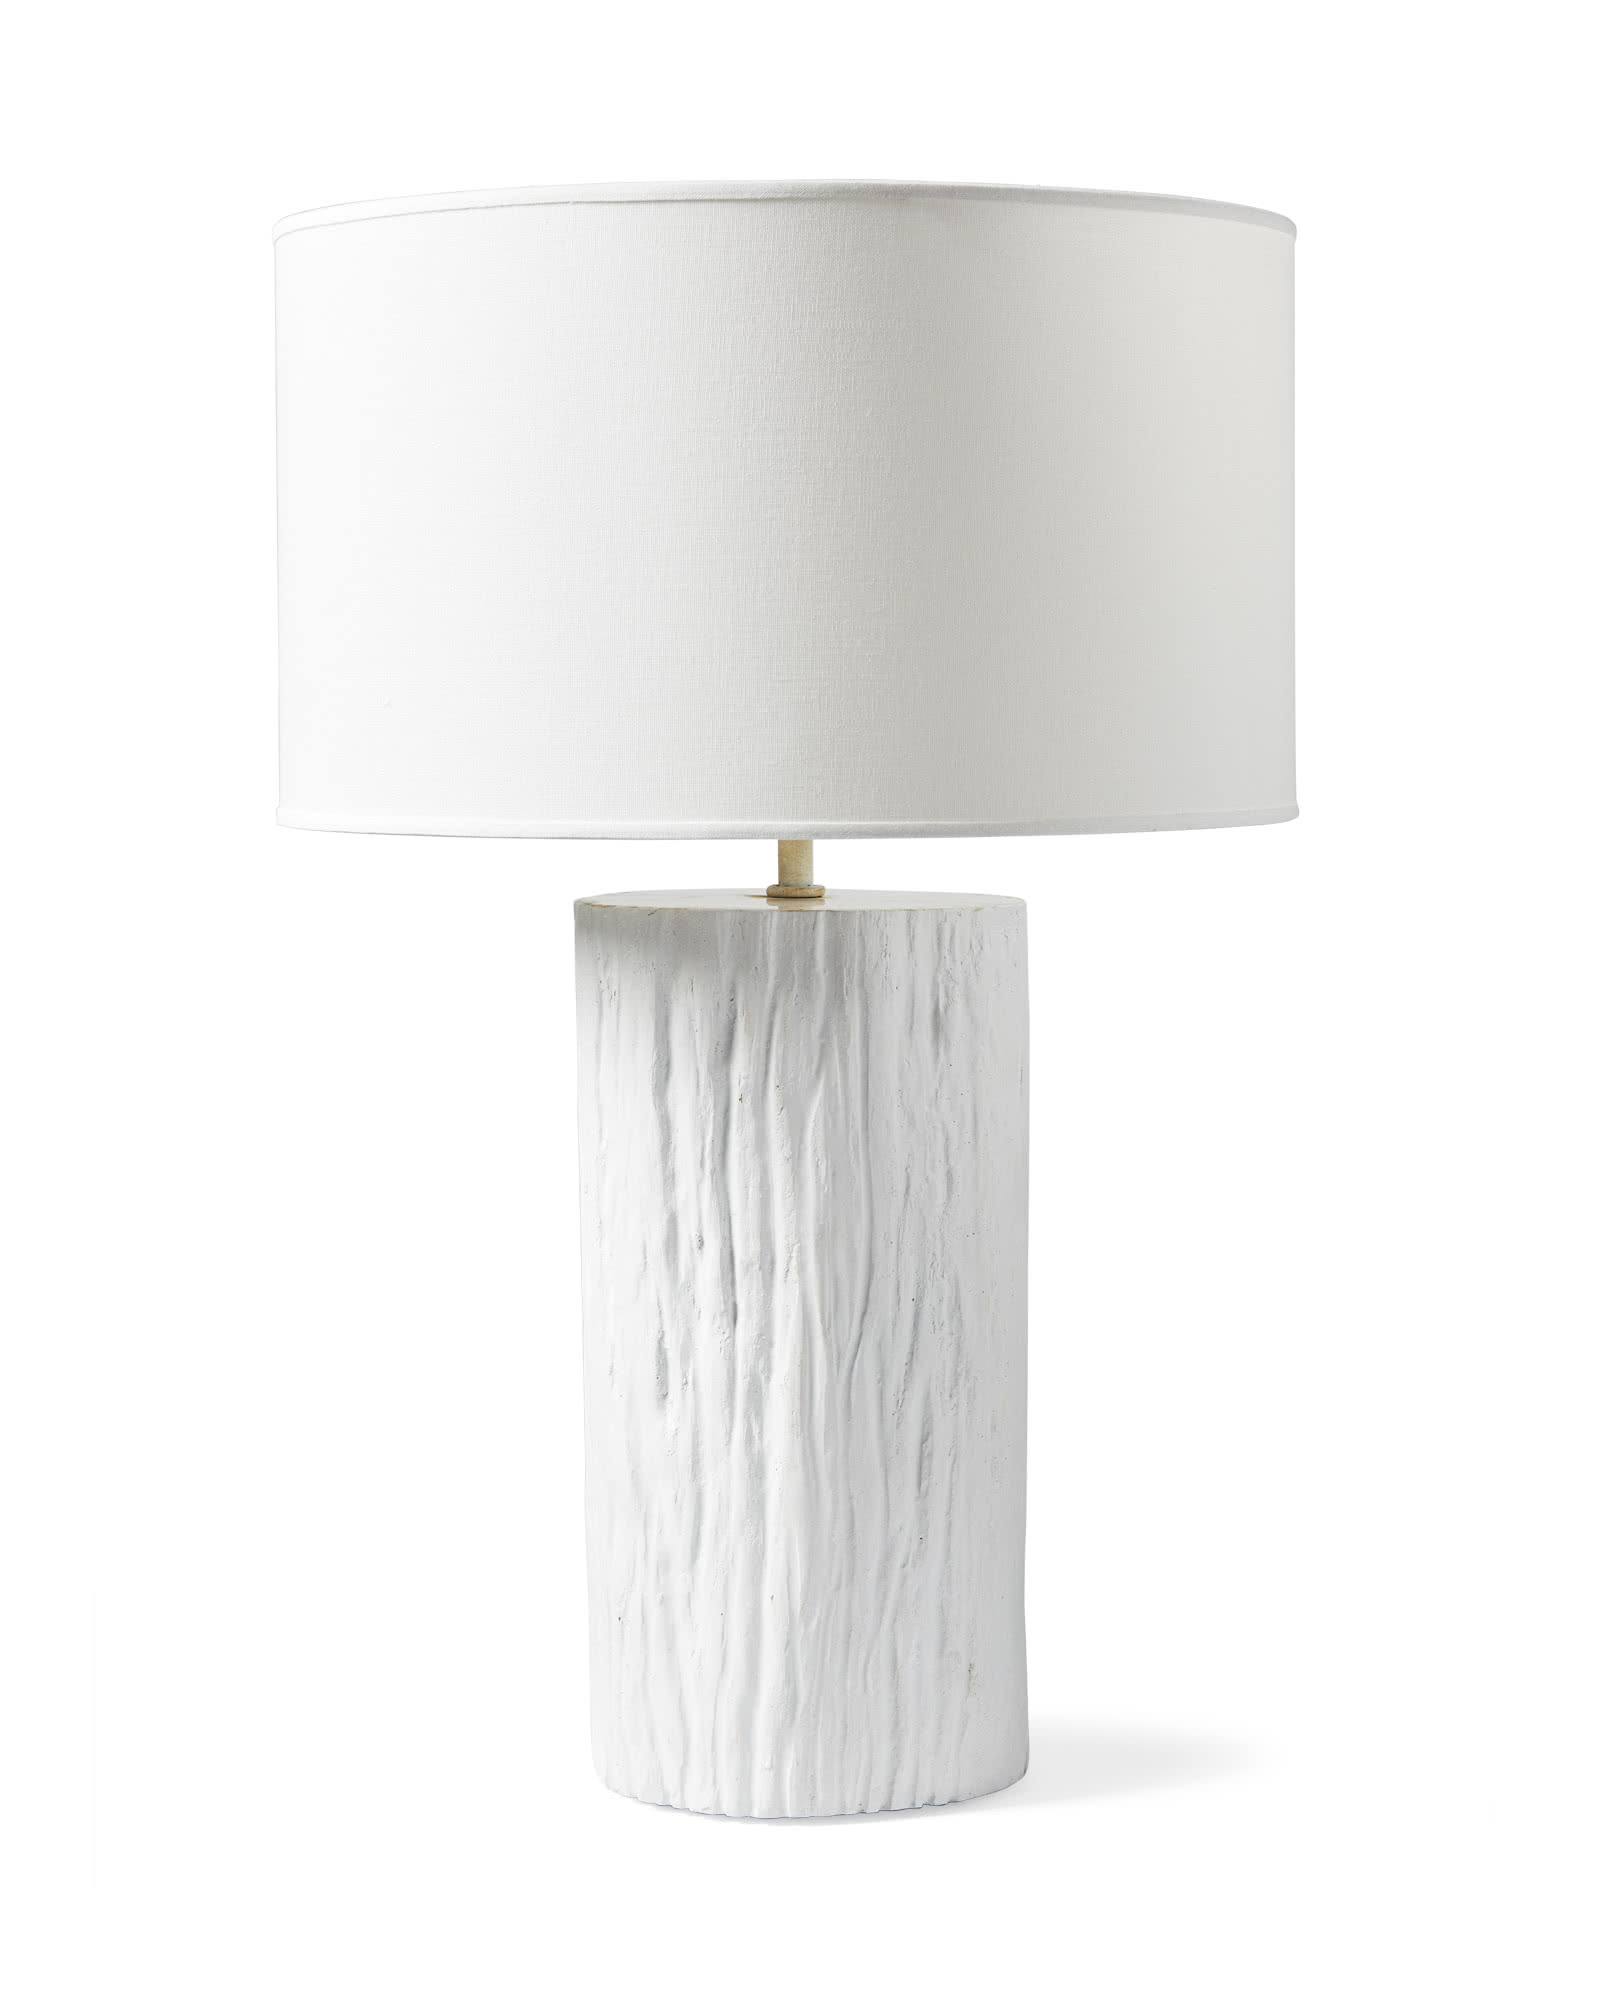 Truro Table Lamp,